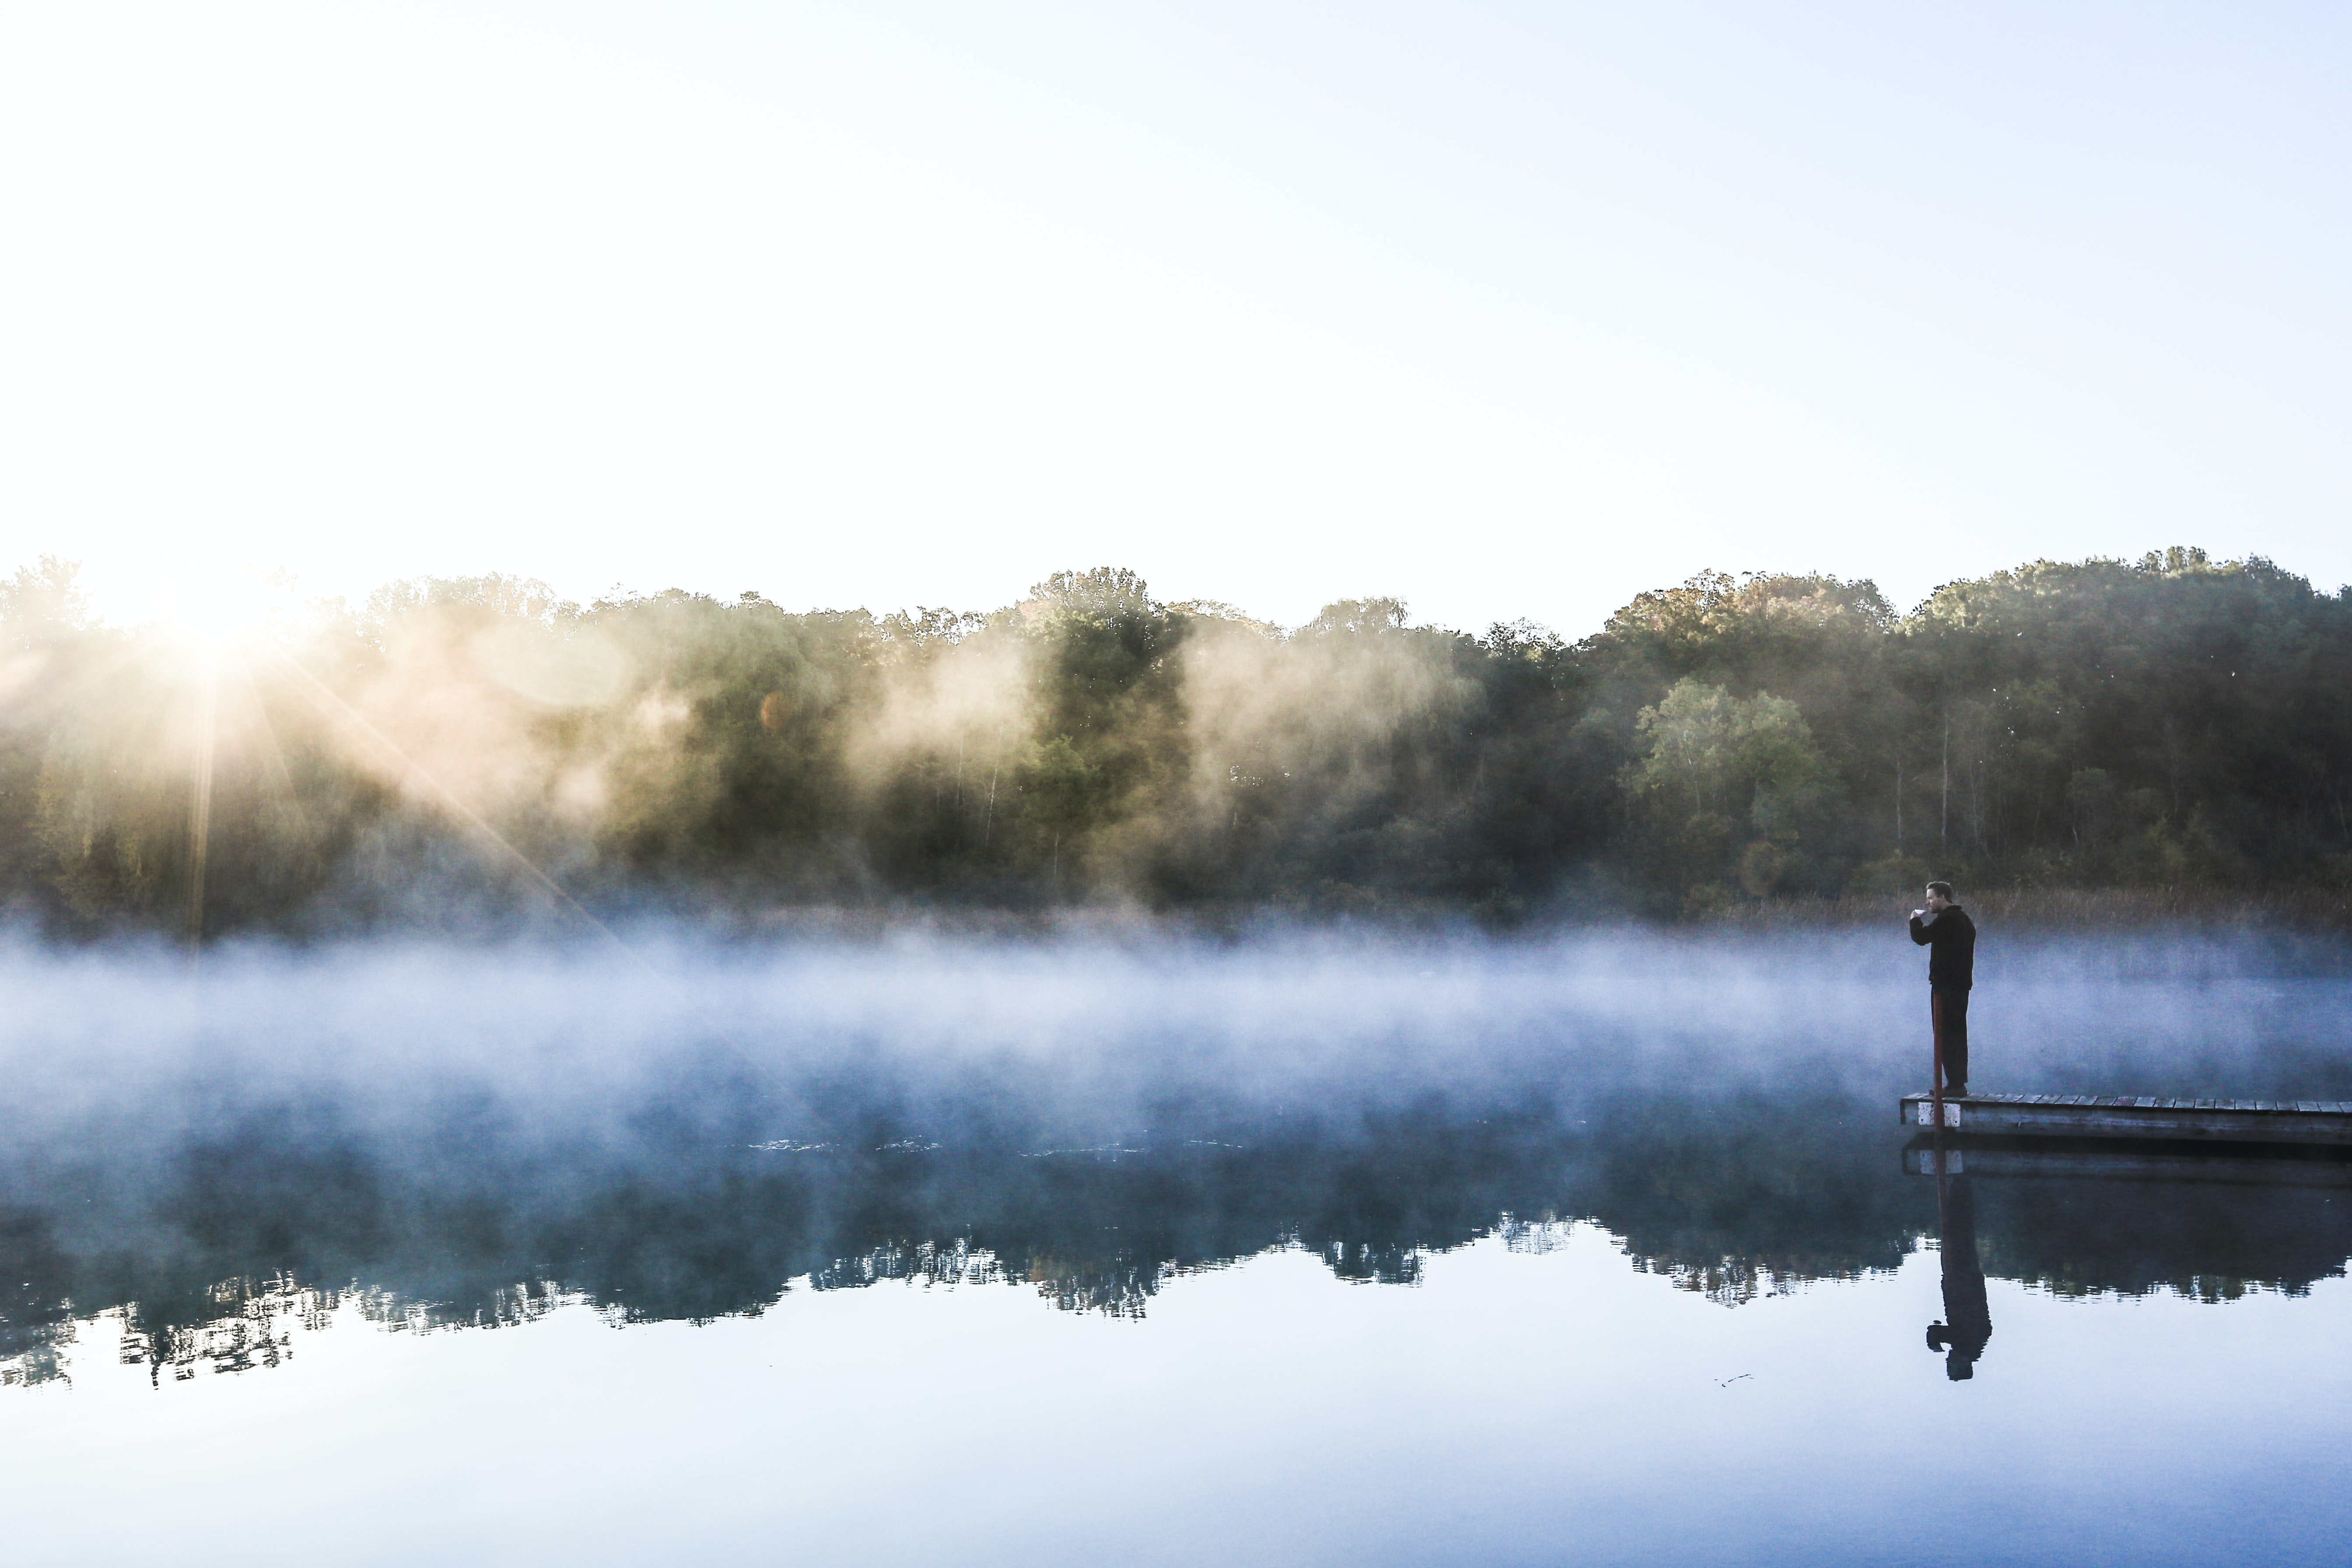 Person standing on the end of a pier looking out at a calm foggy lake